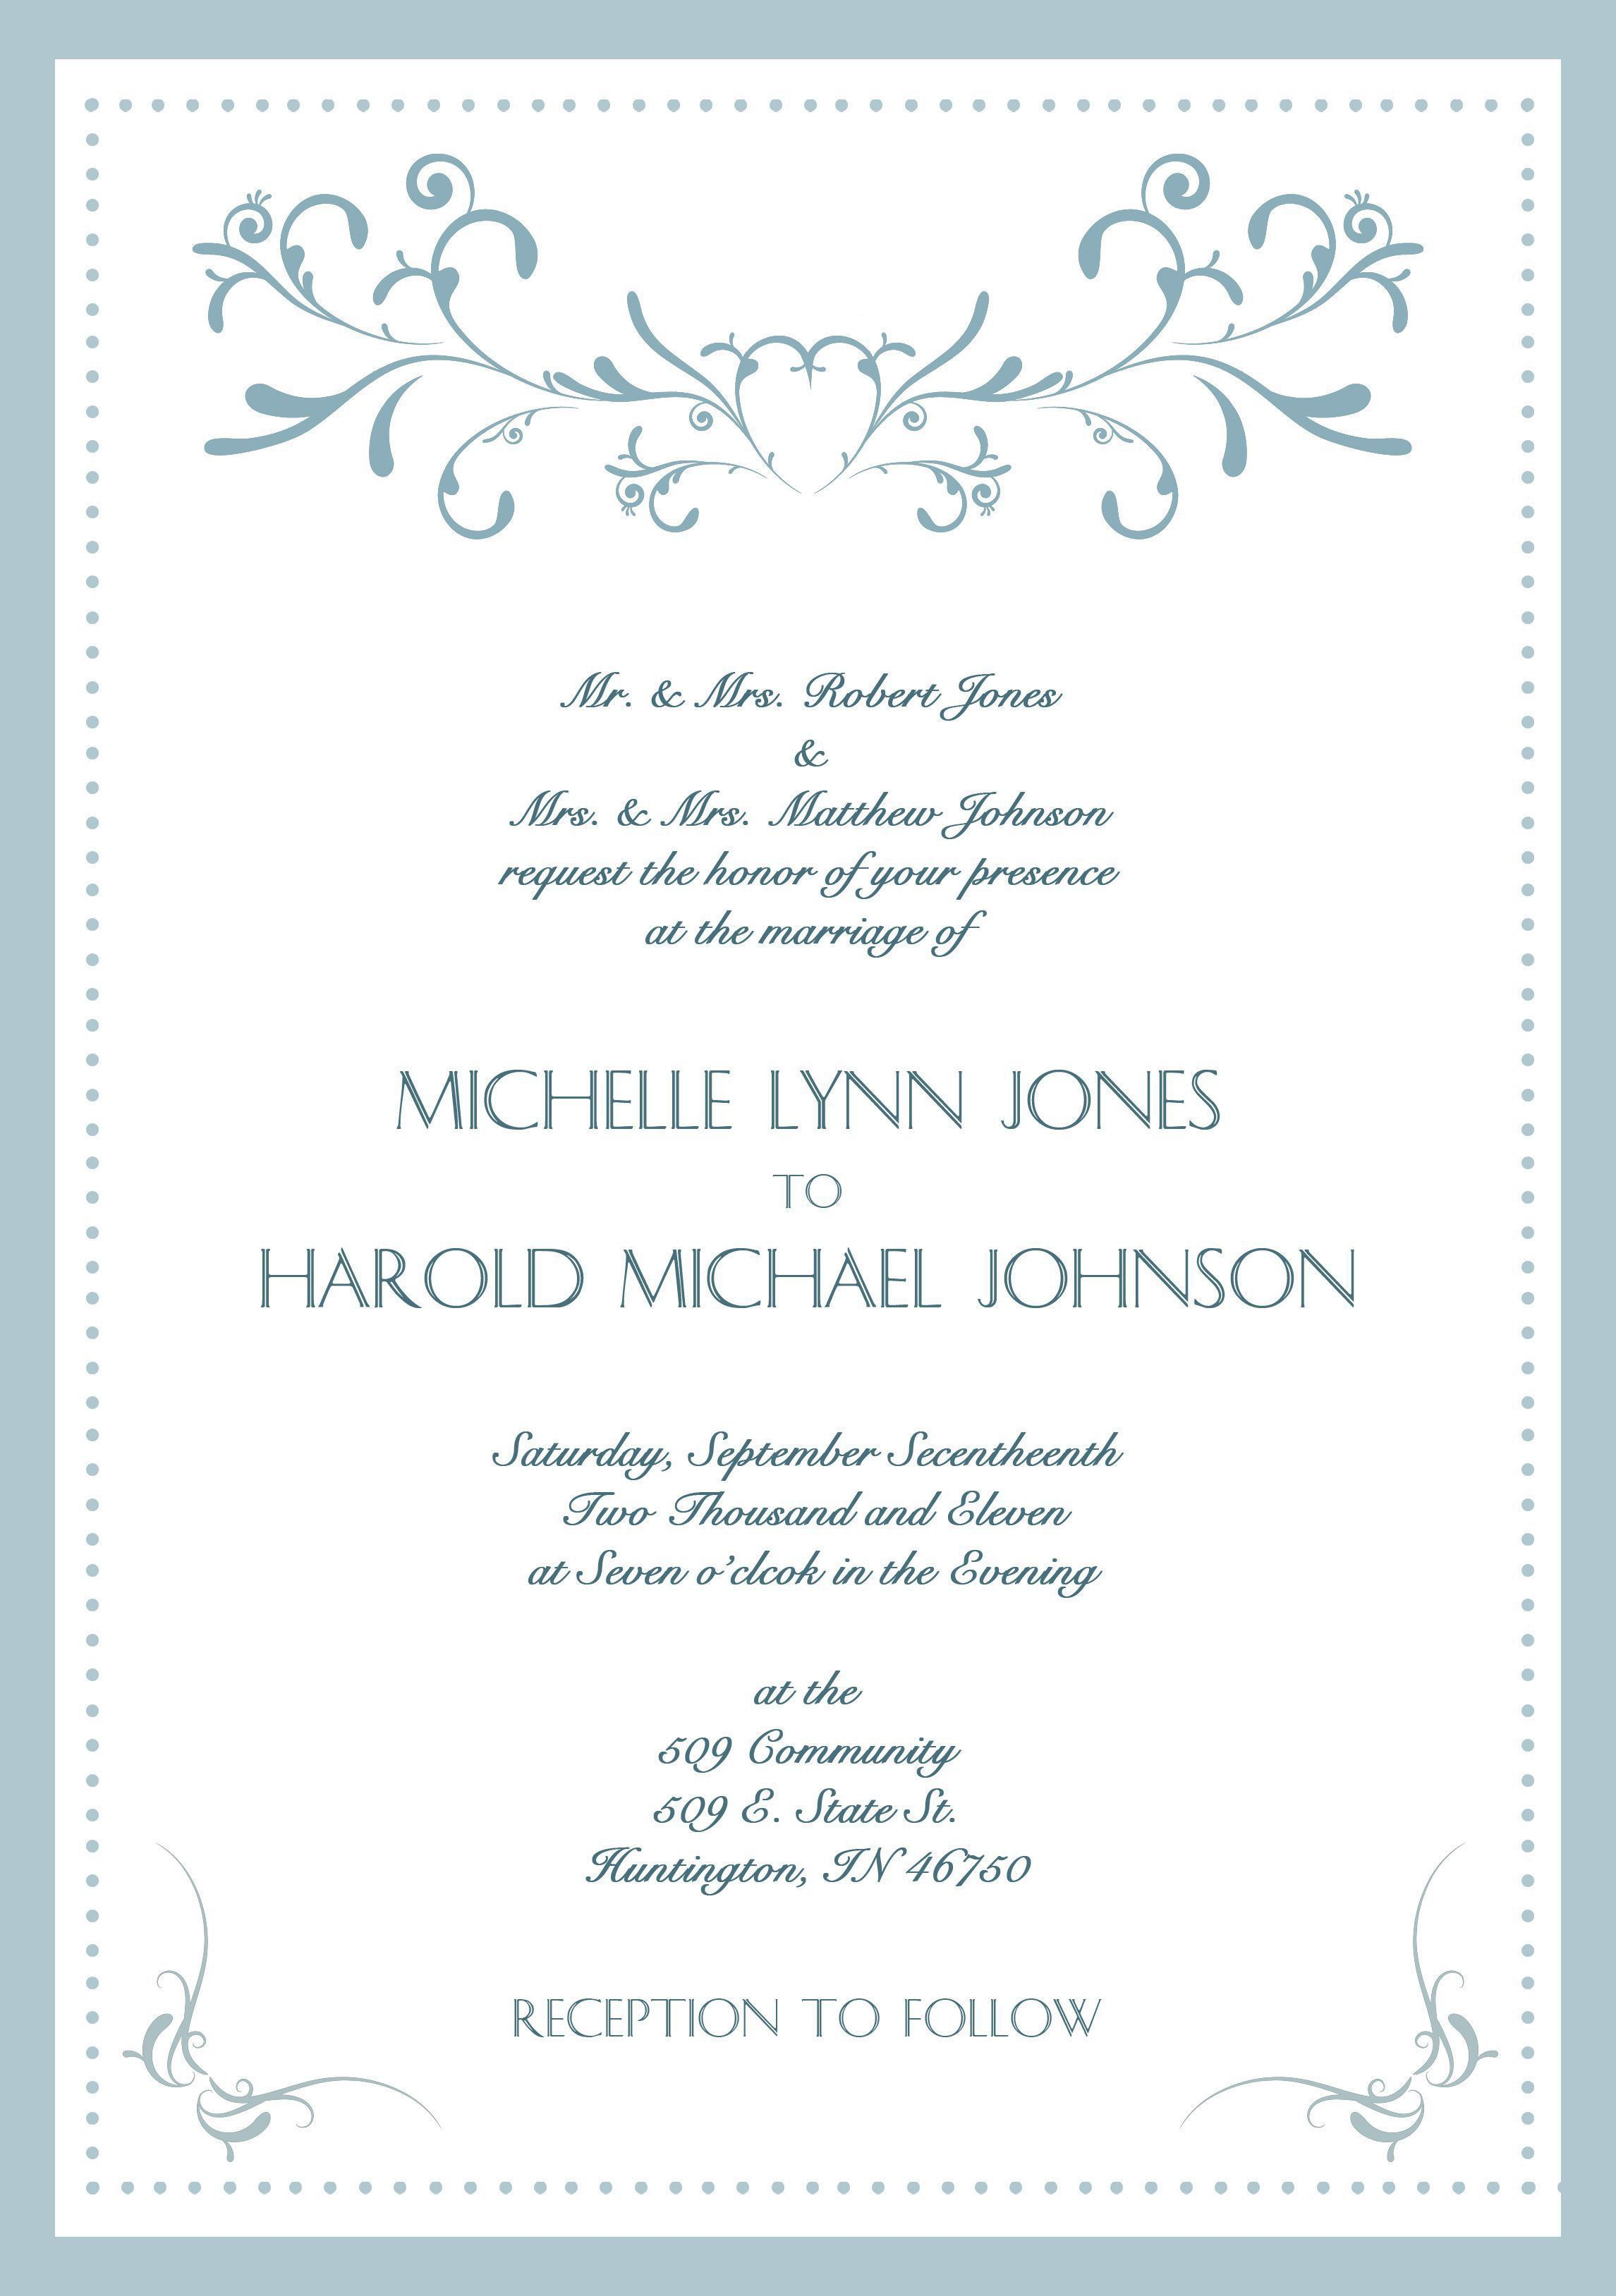 Sample Wedding Invitation Cards In English Sample Wedding Invitation Wording Wedding Invitations Examples Wedding Invitation Wording Formal